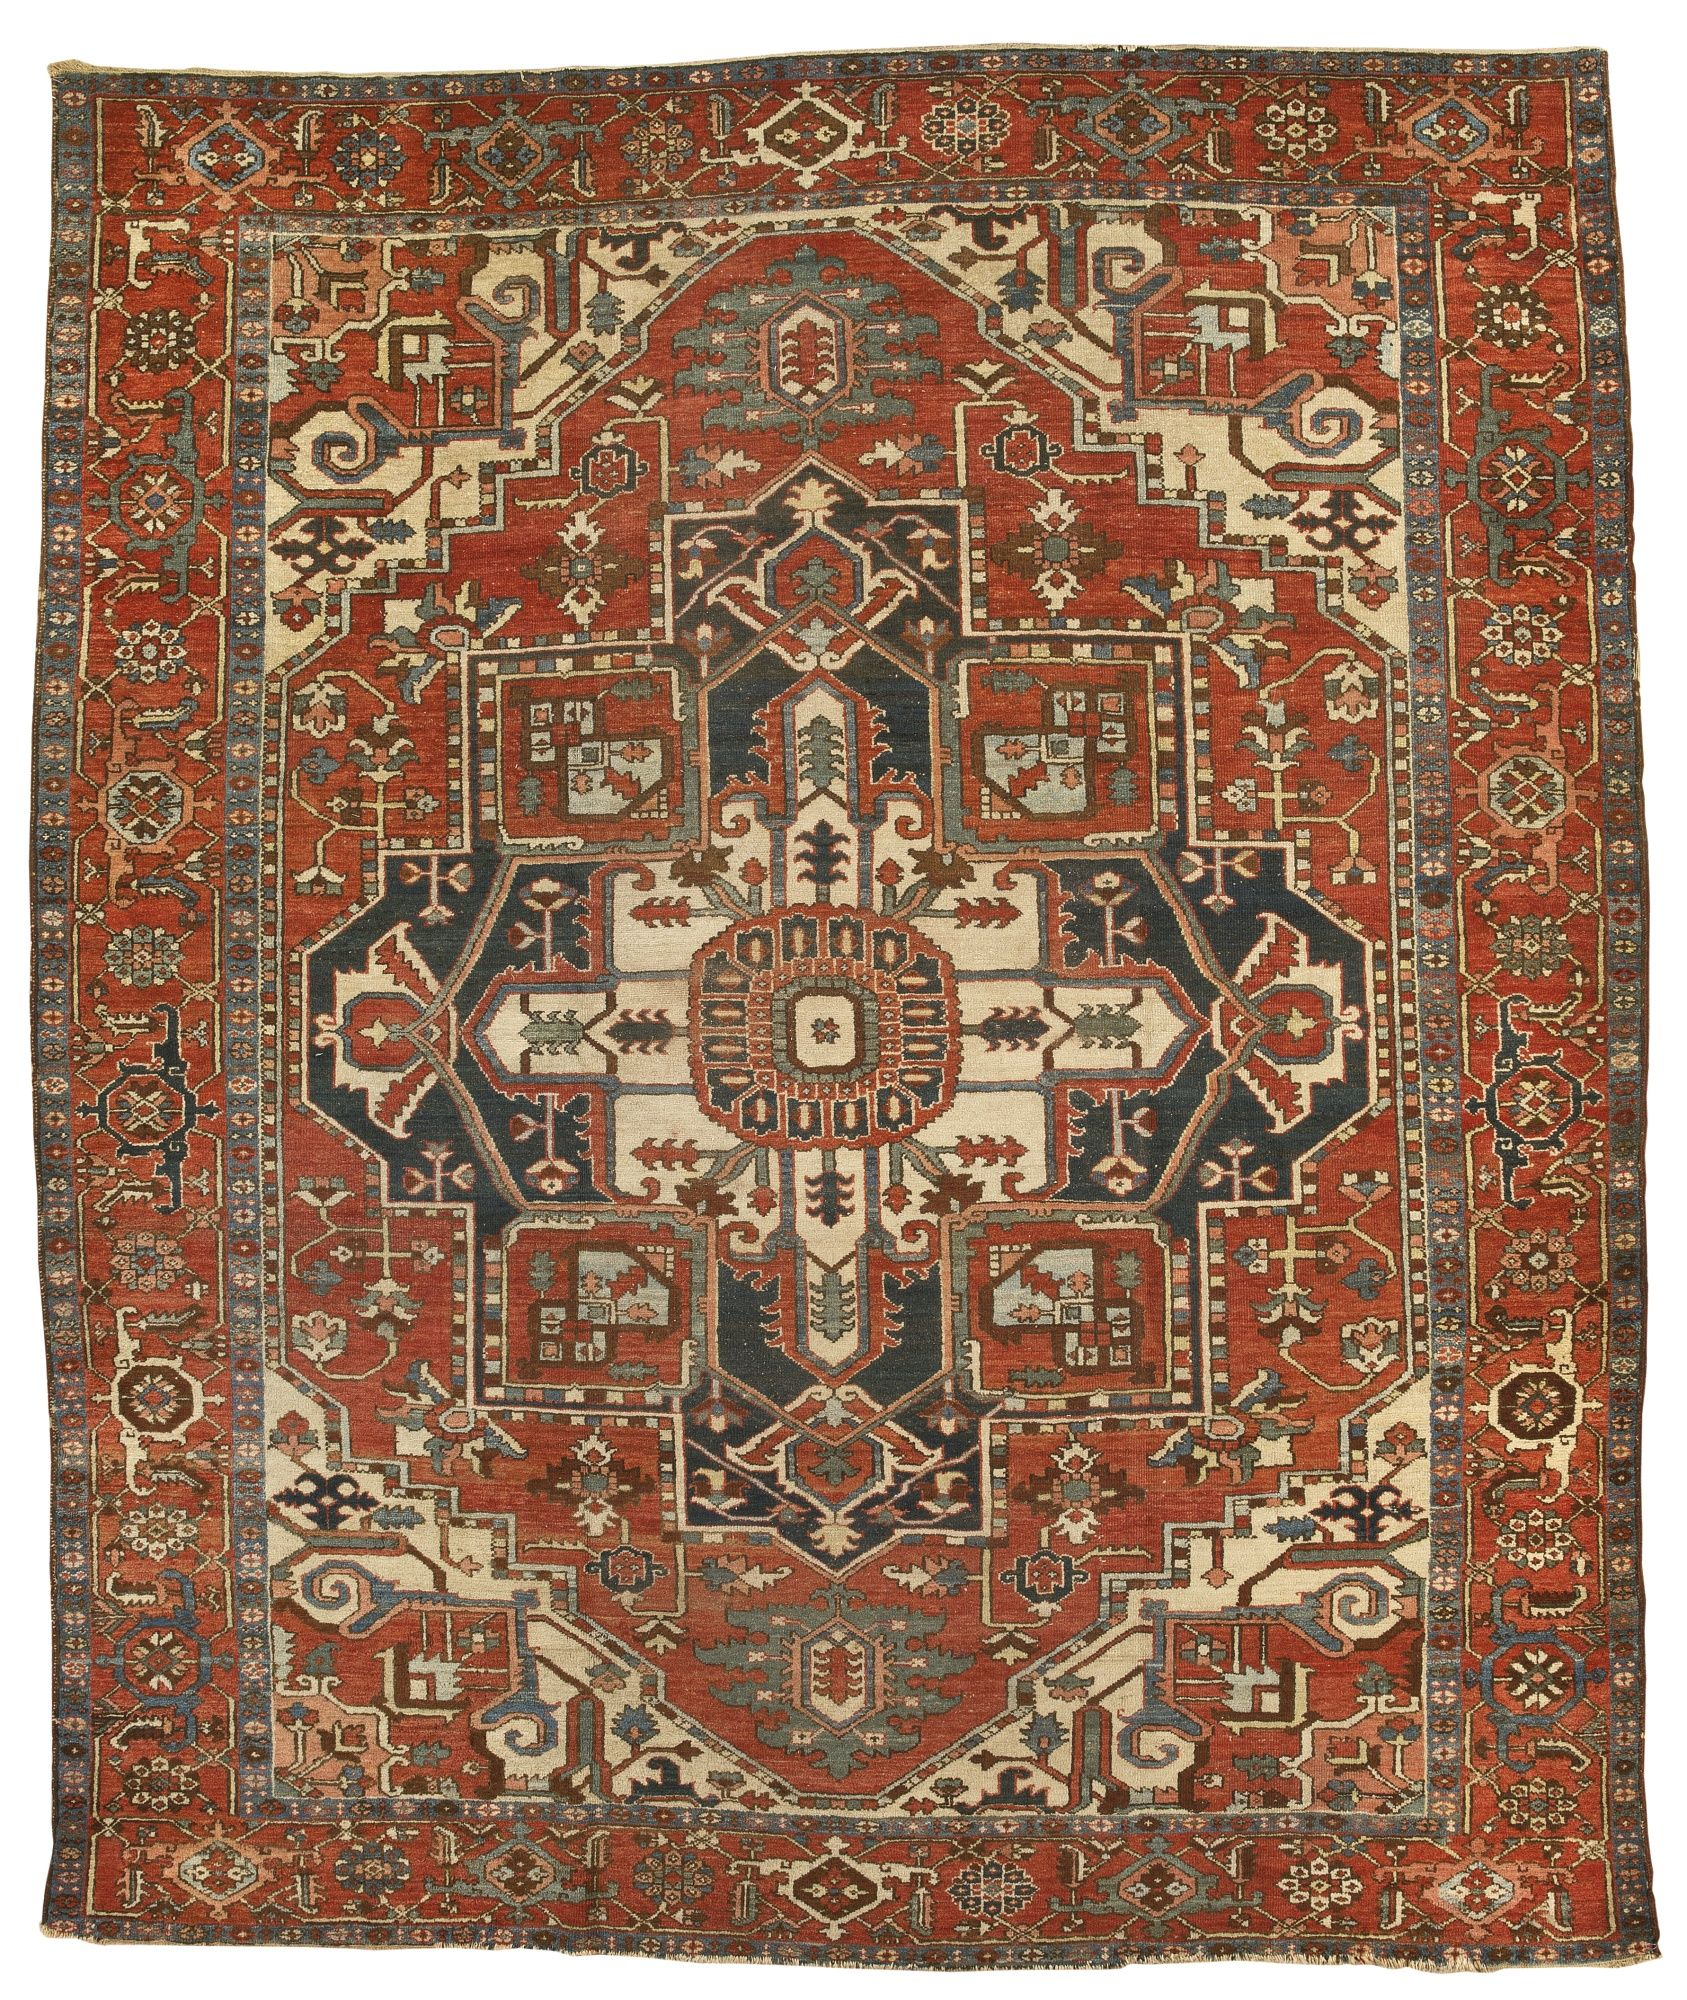 A Karadja Carpet Northwest Persia Approximately 321 By 377cm 10ft 6in 12ft 4in Early 20th Century Estimate 2 316 3 088usd Lot Sold 2 895 Usd